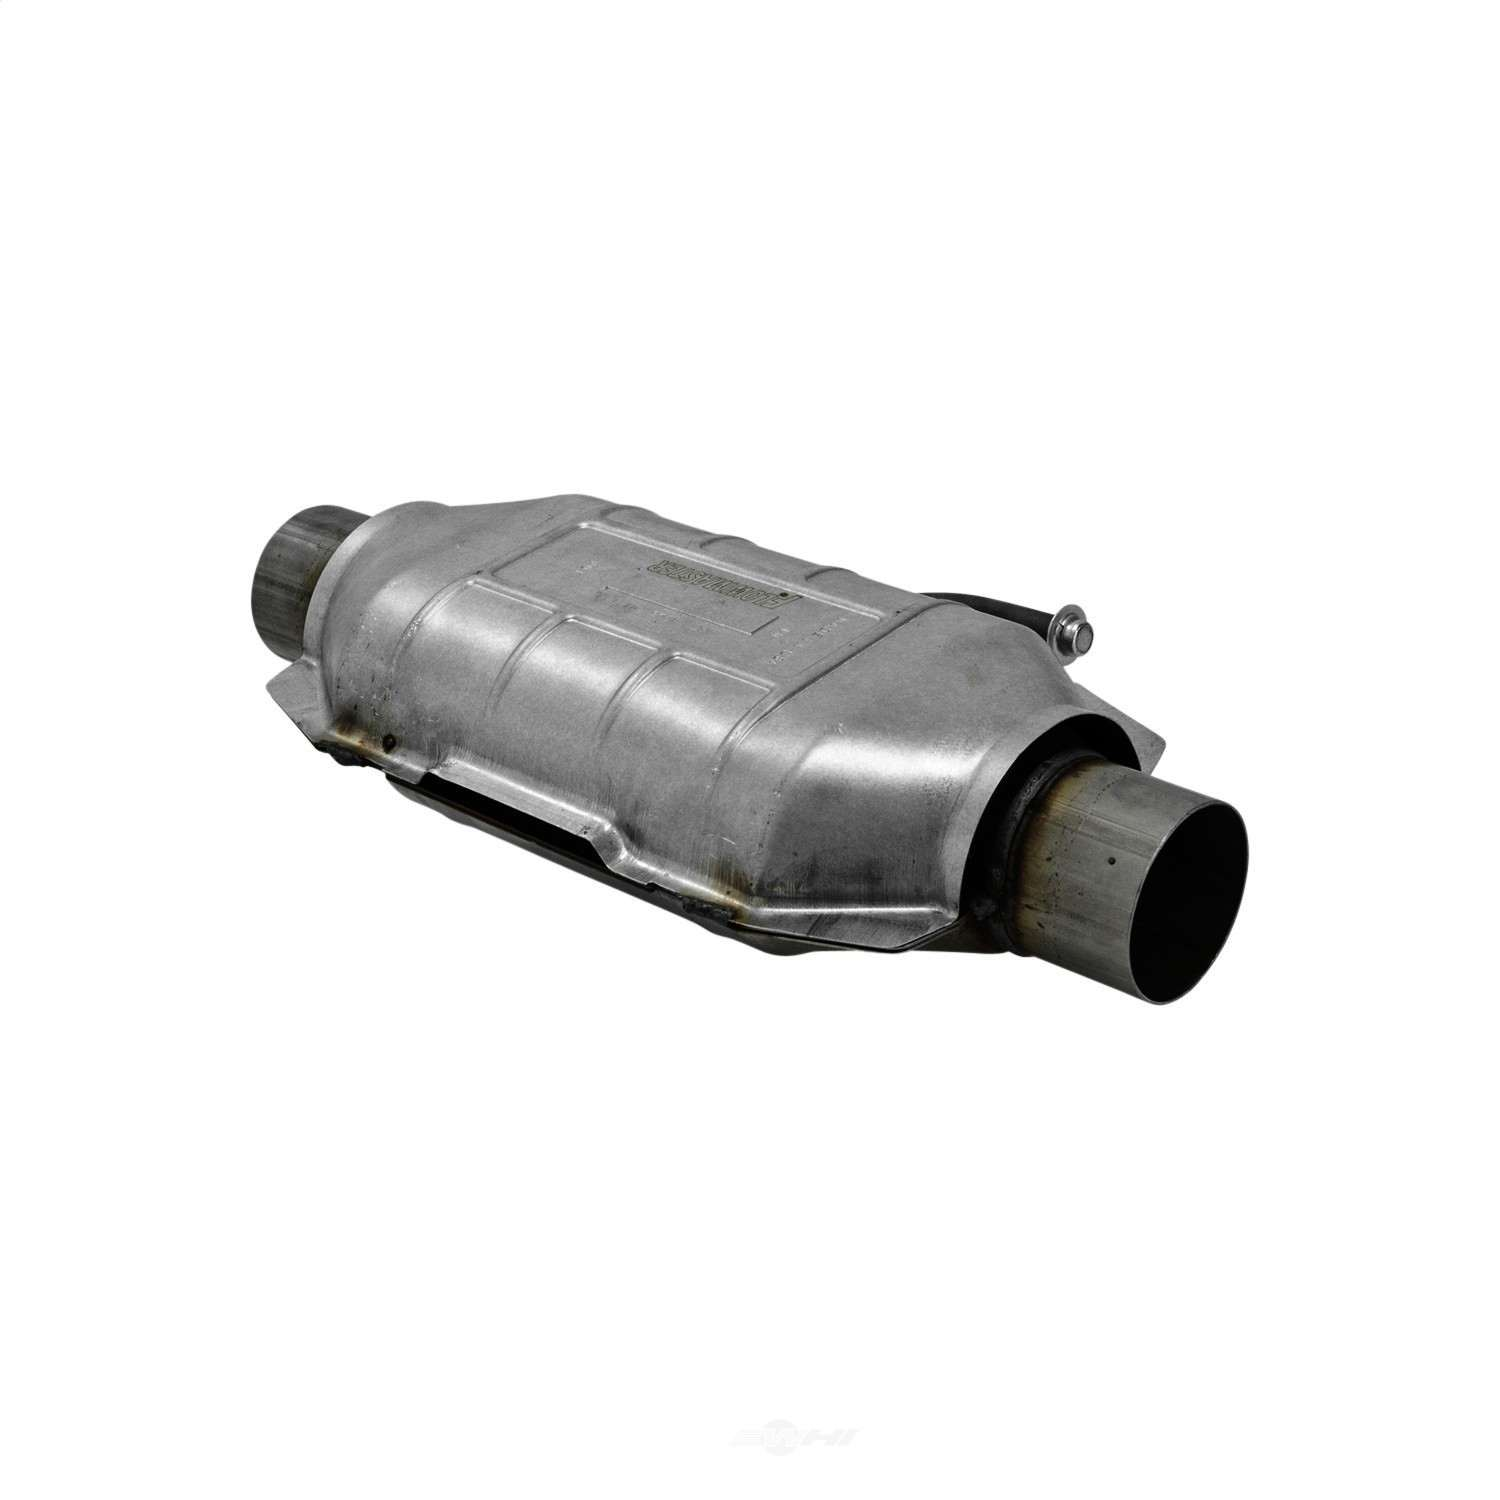 FLOWMASTER - Universal-Fit 290 Series Extra Duty Catalytic Converter - FLO 2900225